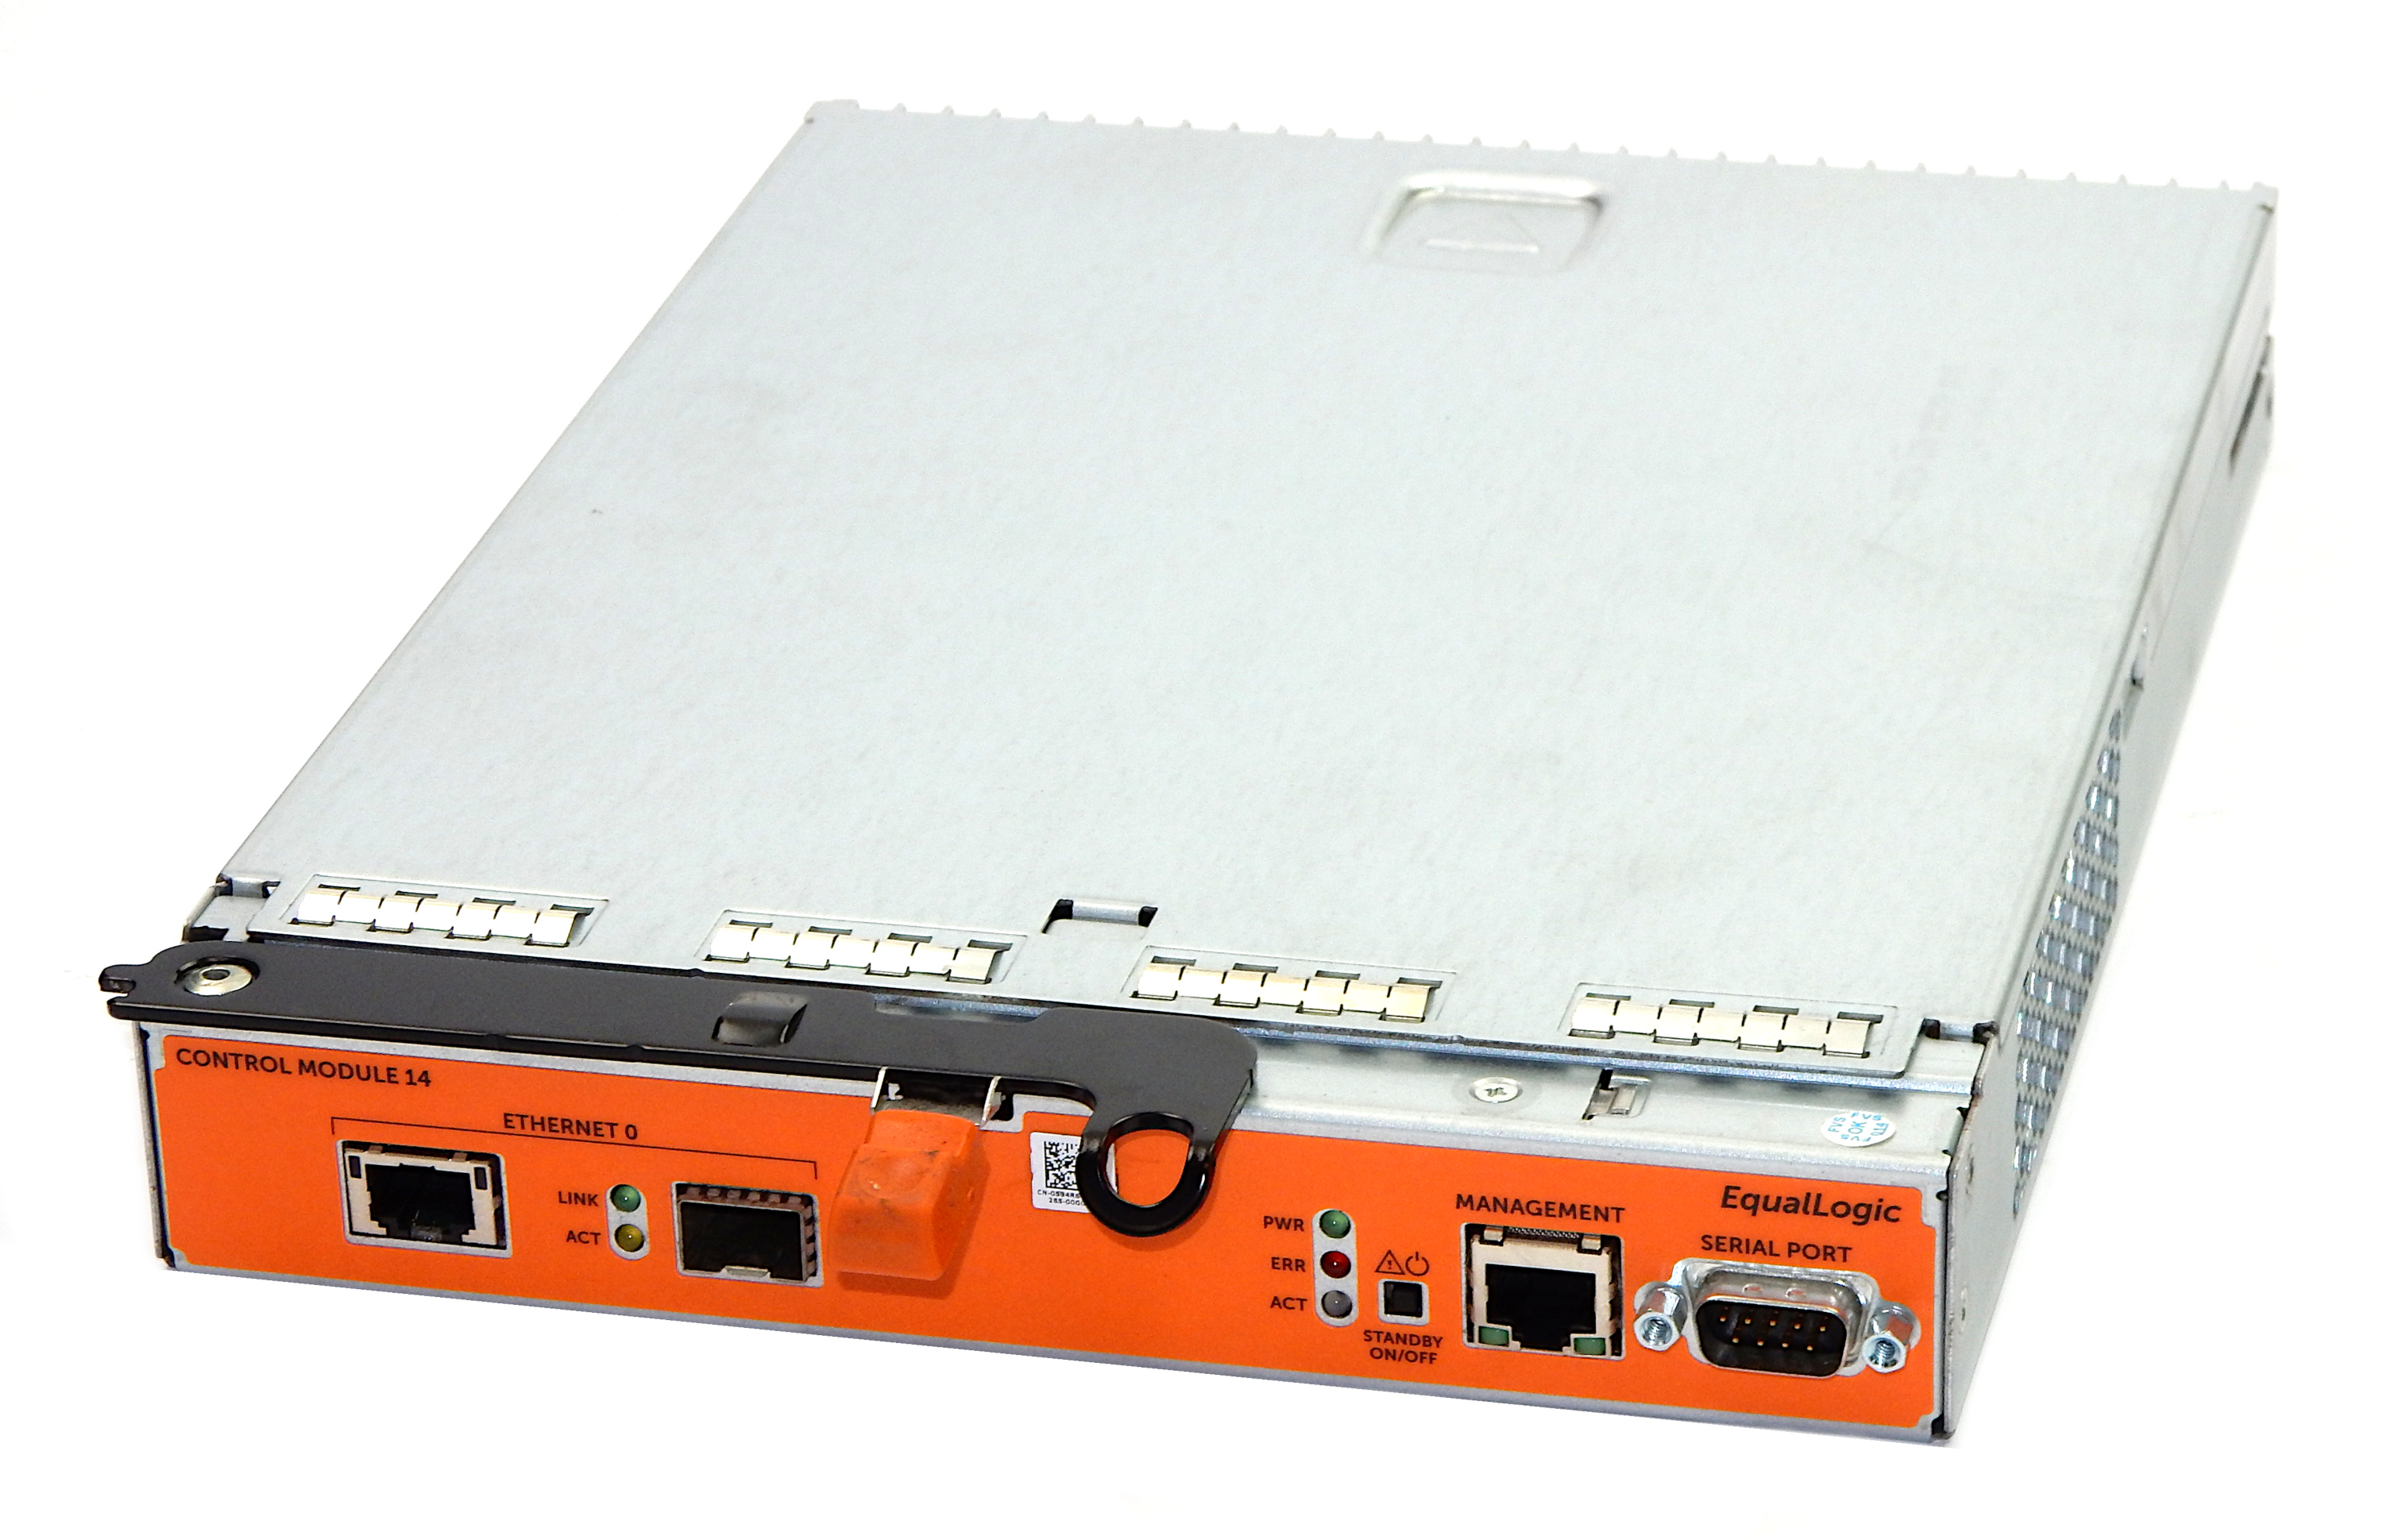 Dell 594R6 EquaLogic 10GbE iSCSI Type 14 Controller For EqualLogic PS6110